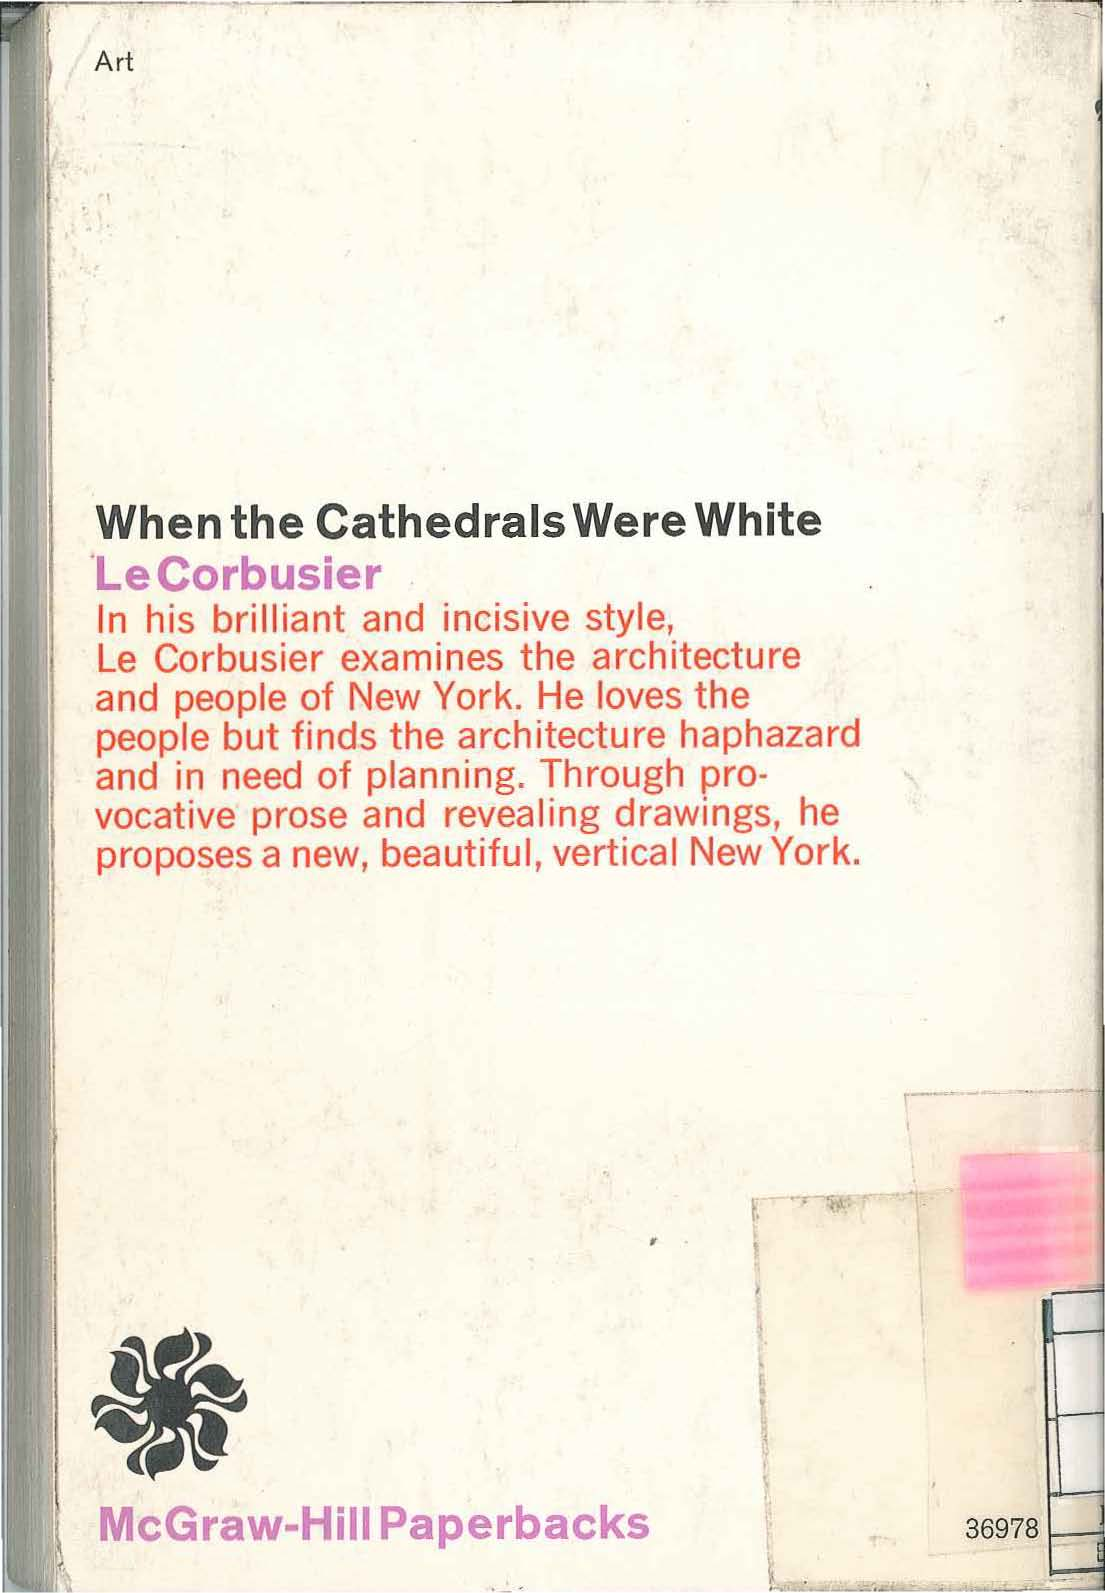 Art When the Cathedrals Were White ole Corbusier In his brilliant and incisive style, Le Corbusier examines the architecture and people of New York.